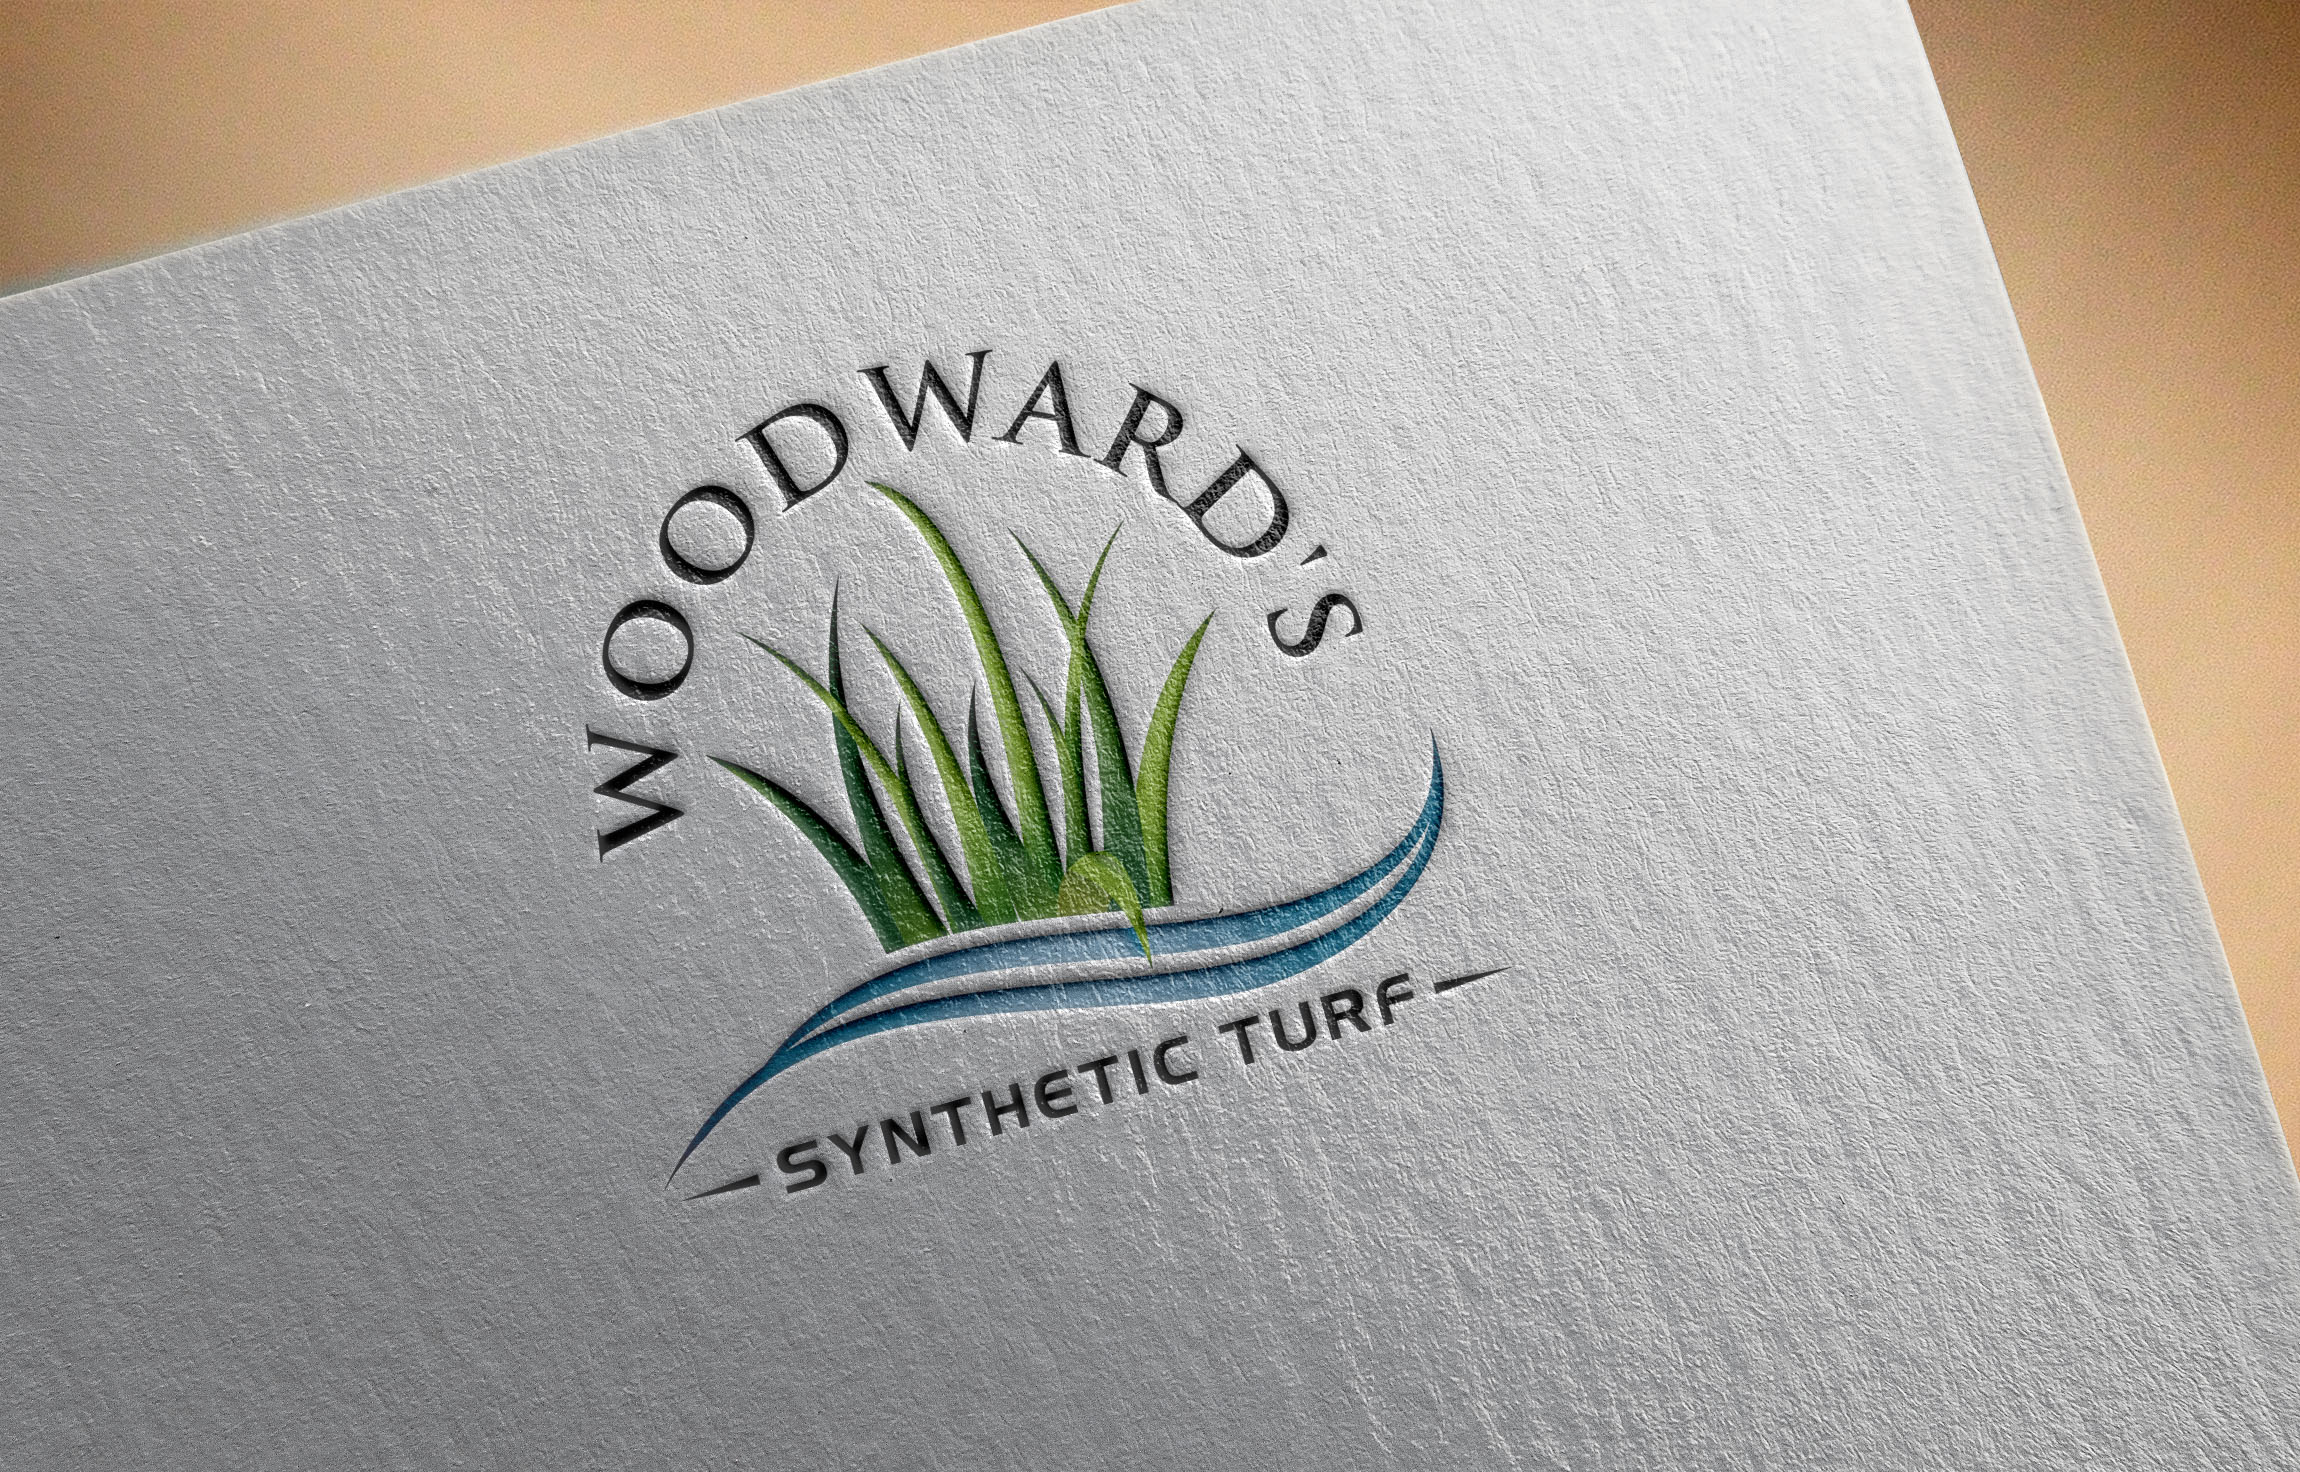 Logo Design by Raymond Garcia - Entry No. 44 in the Logo Design Contest Artistic Logo Design for Woodward's Synthetic Turf.